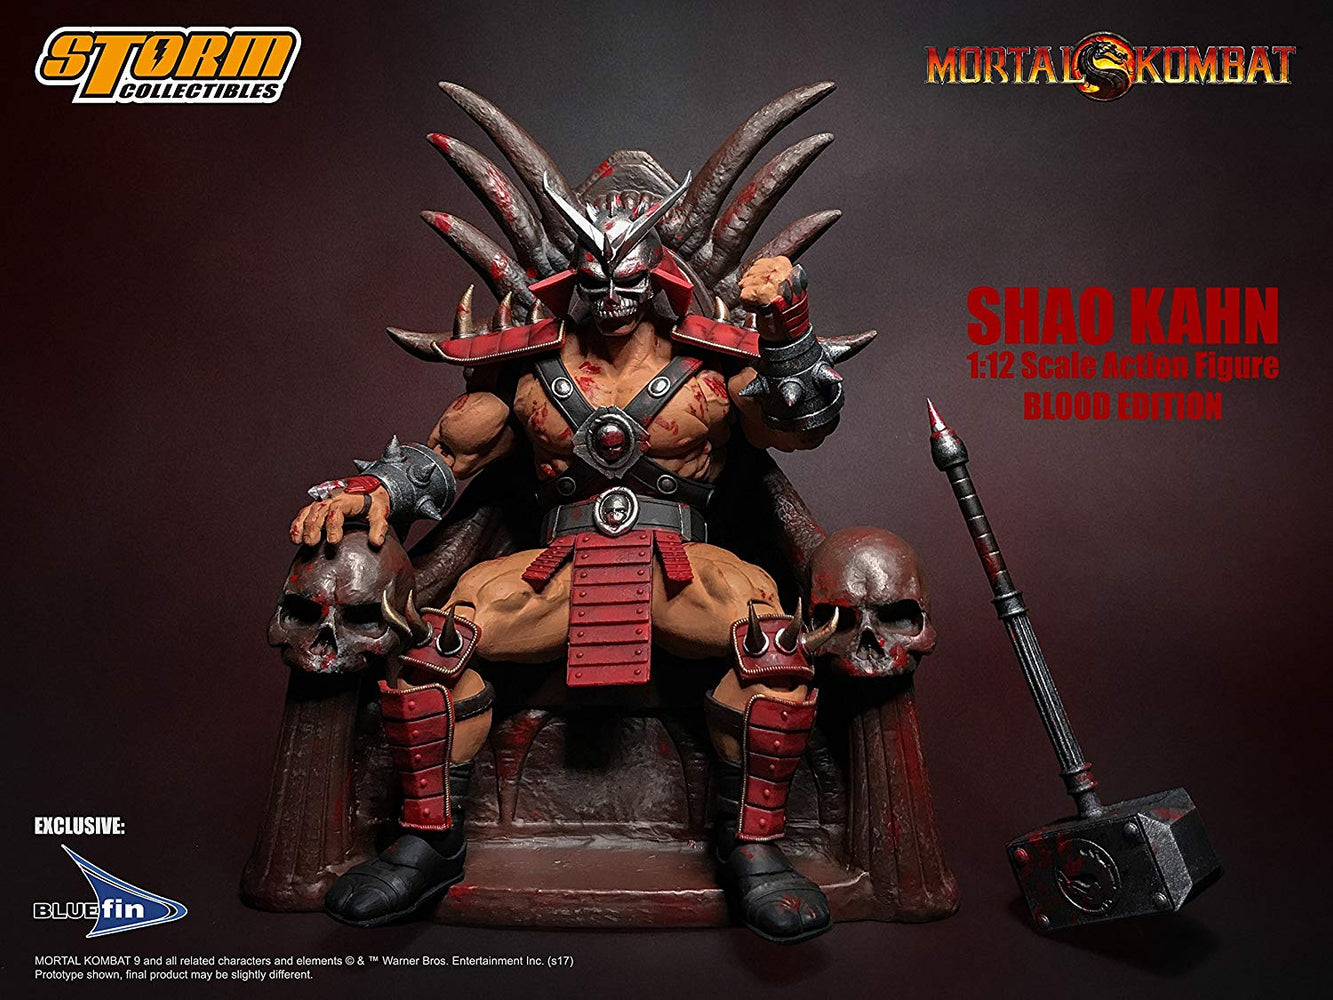 Shao Kahn Special Edition Bloody Variant - Toy Titanz